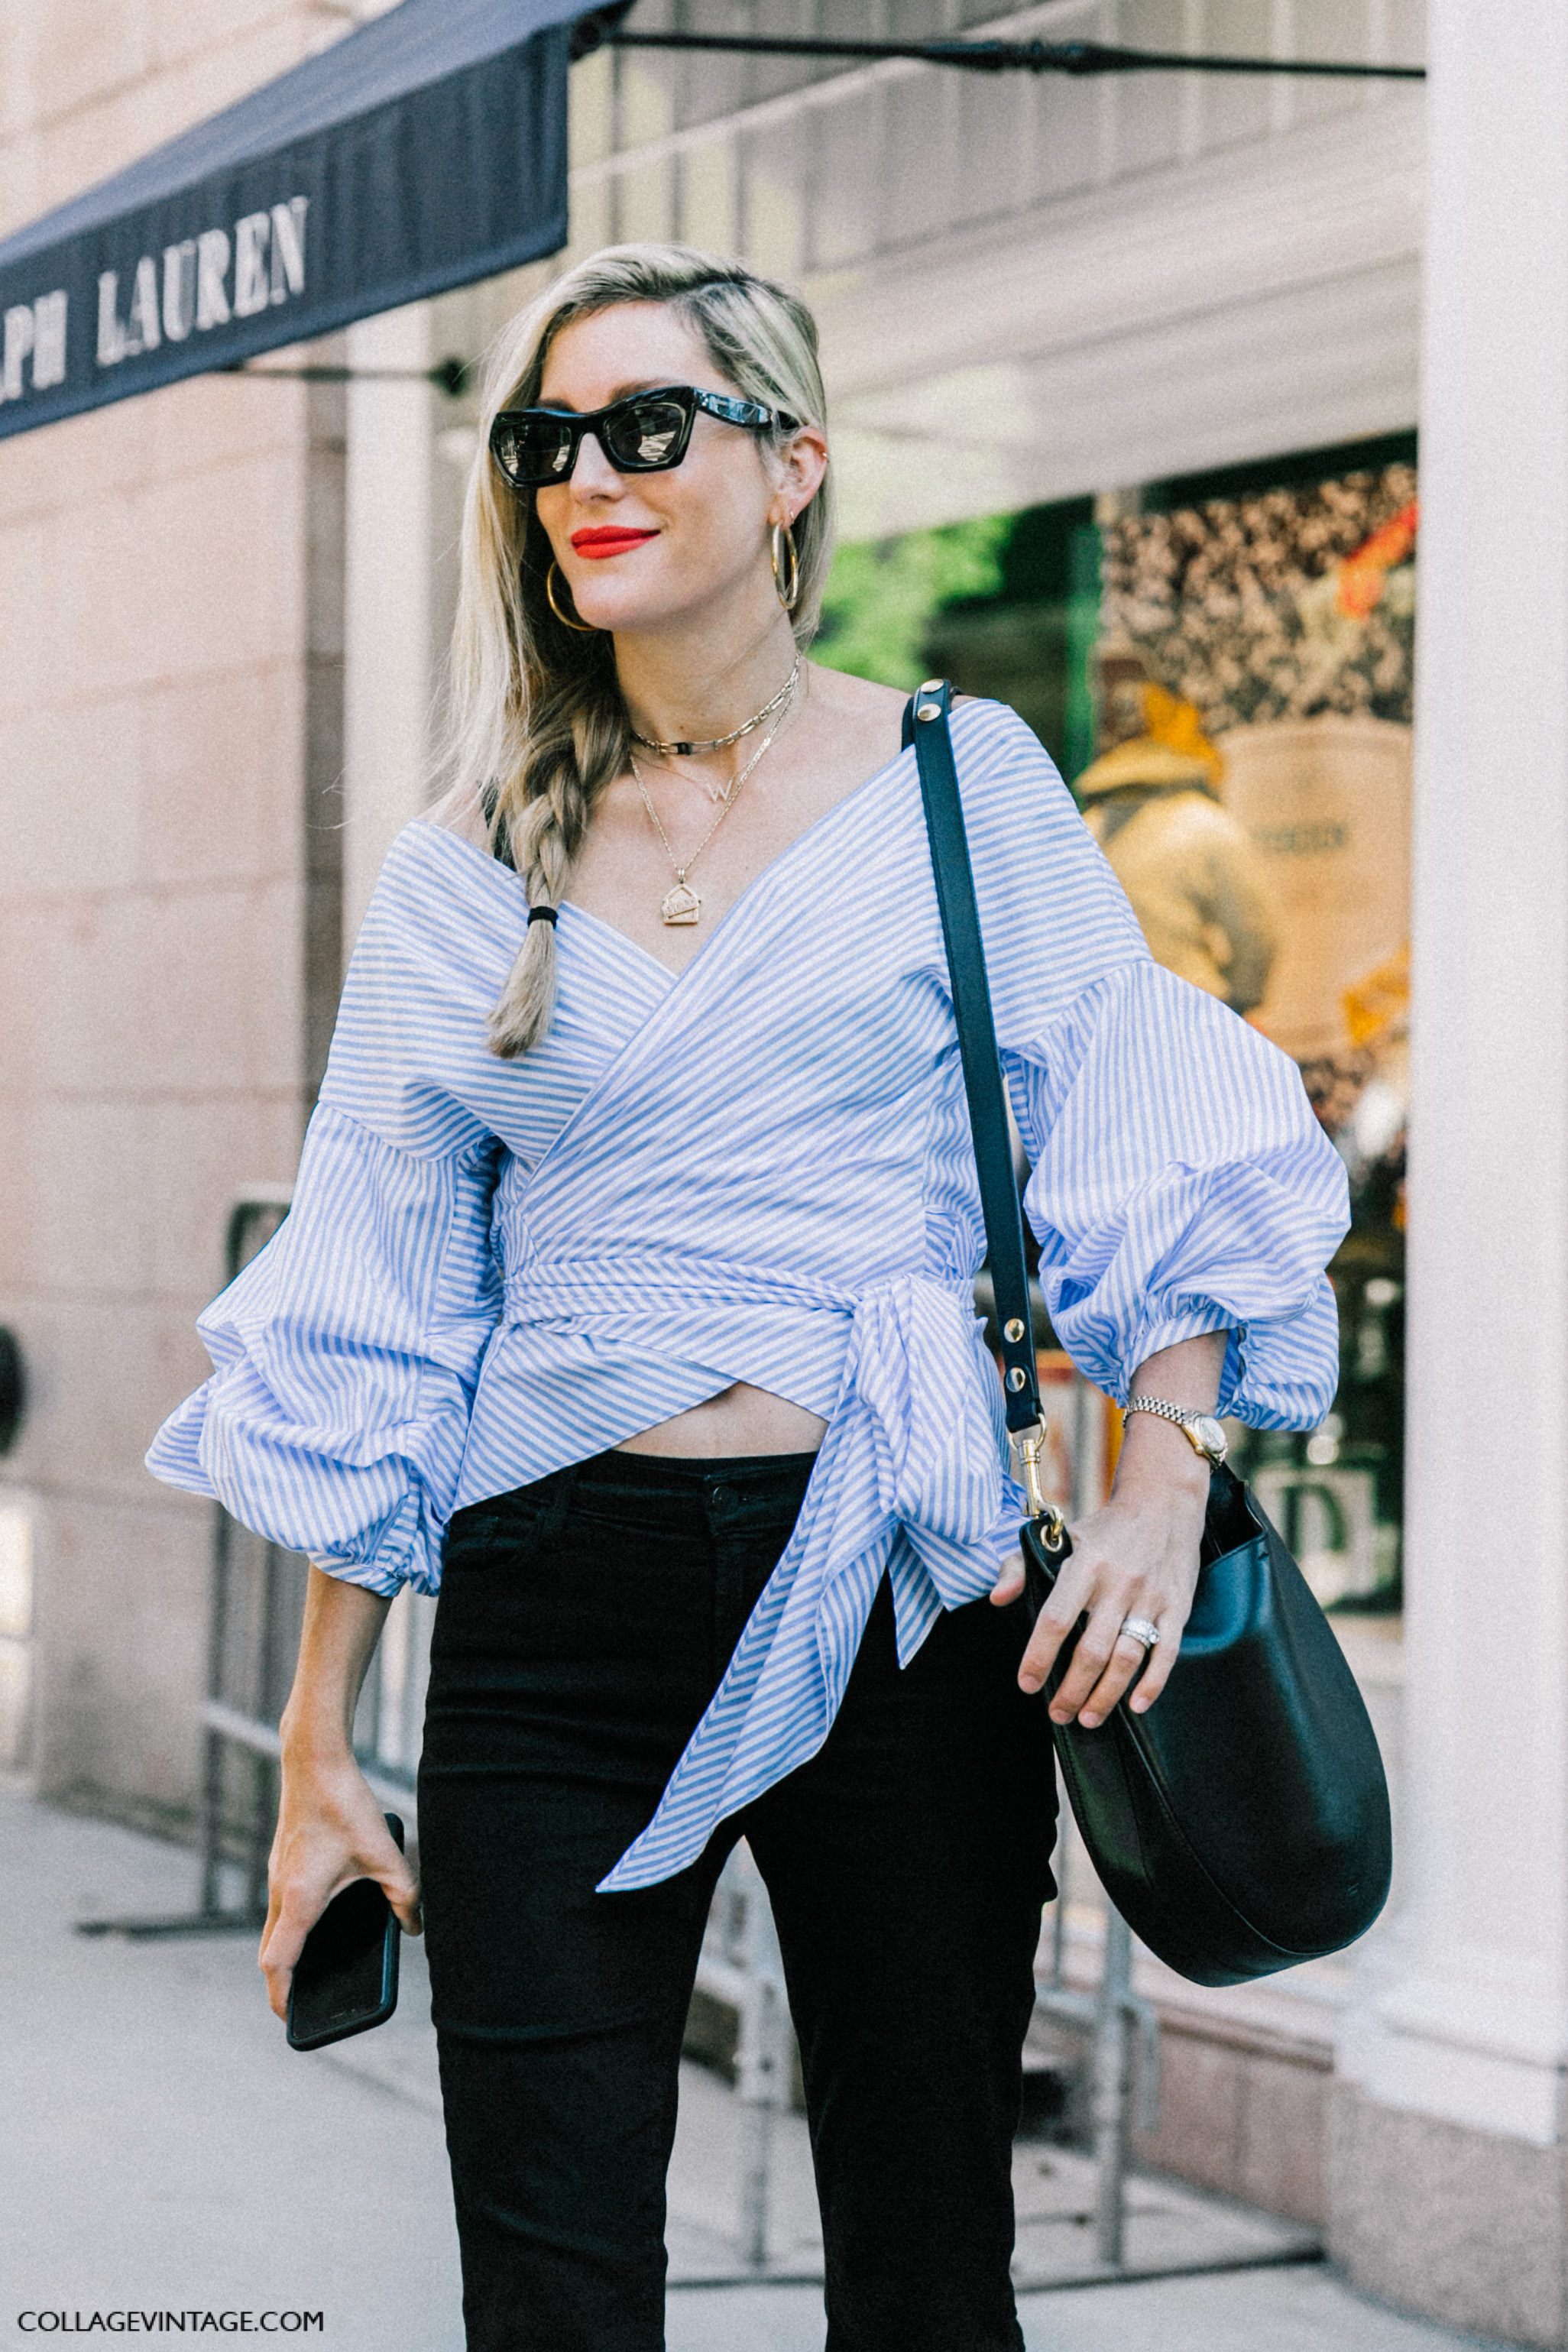 nyfw-new_york_fashion_week_ss17-street_style-outfits-collage_vintage-vintage-phillip_lim-the-row-proenza_schouler-rossie_aussolin-24